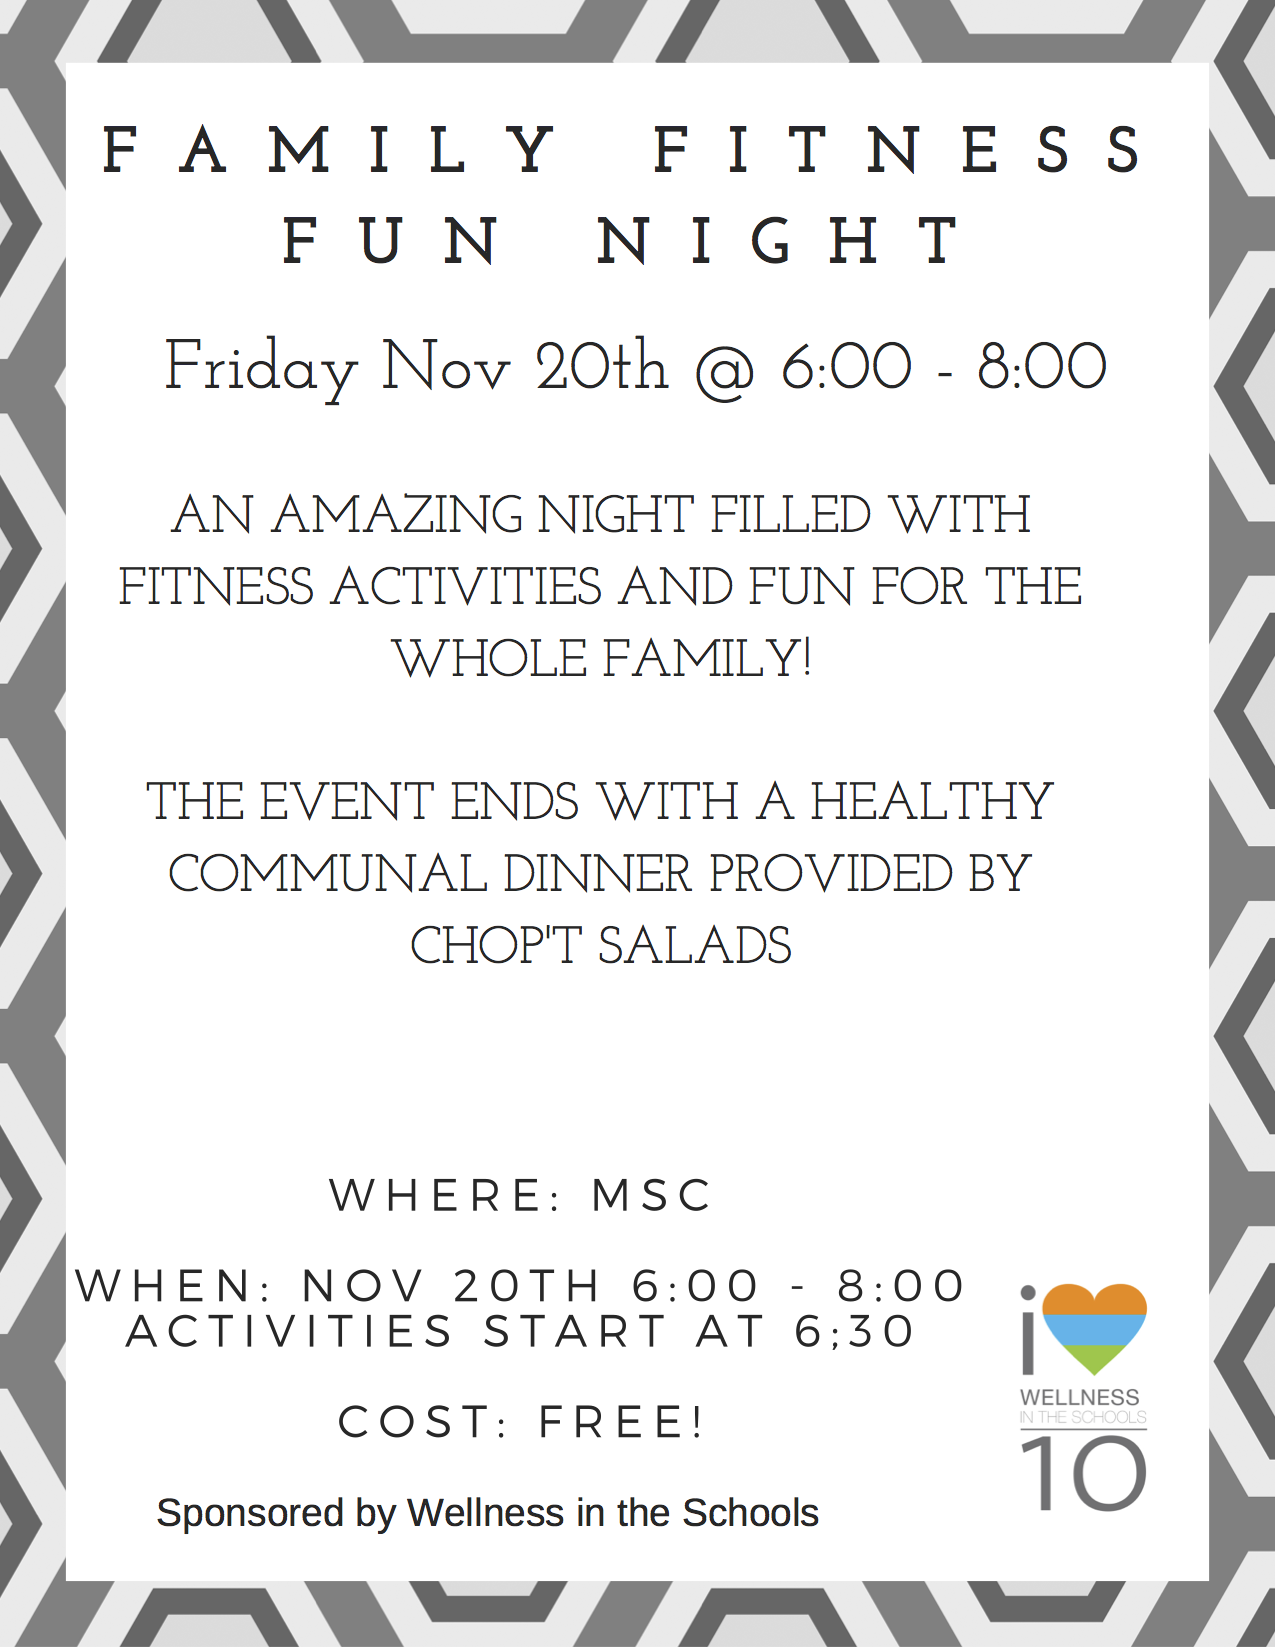 Family Fitness Fun Night Flyer.png